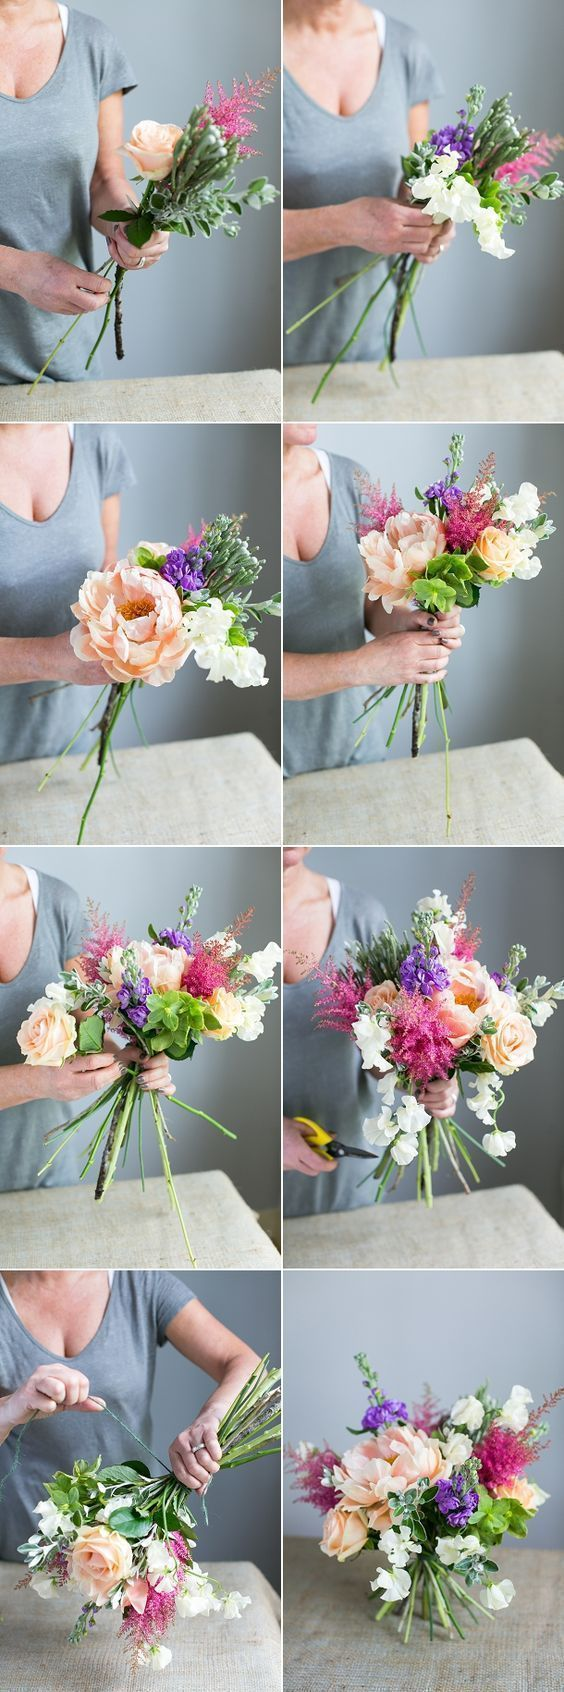 This floral DIY will help you create the best mixed spring bouquet ever! I love how easy and useful this guide is! #weddingfloral